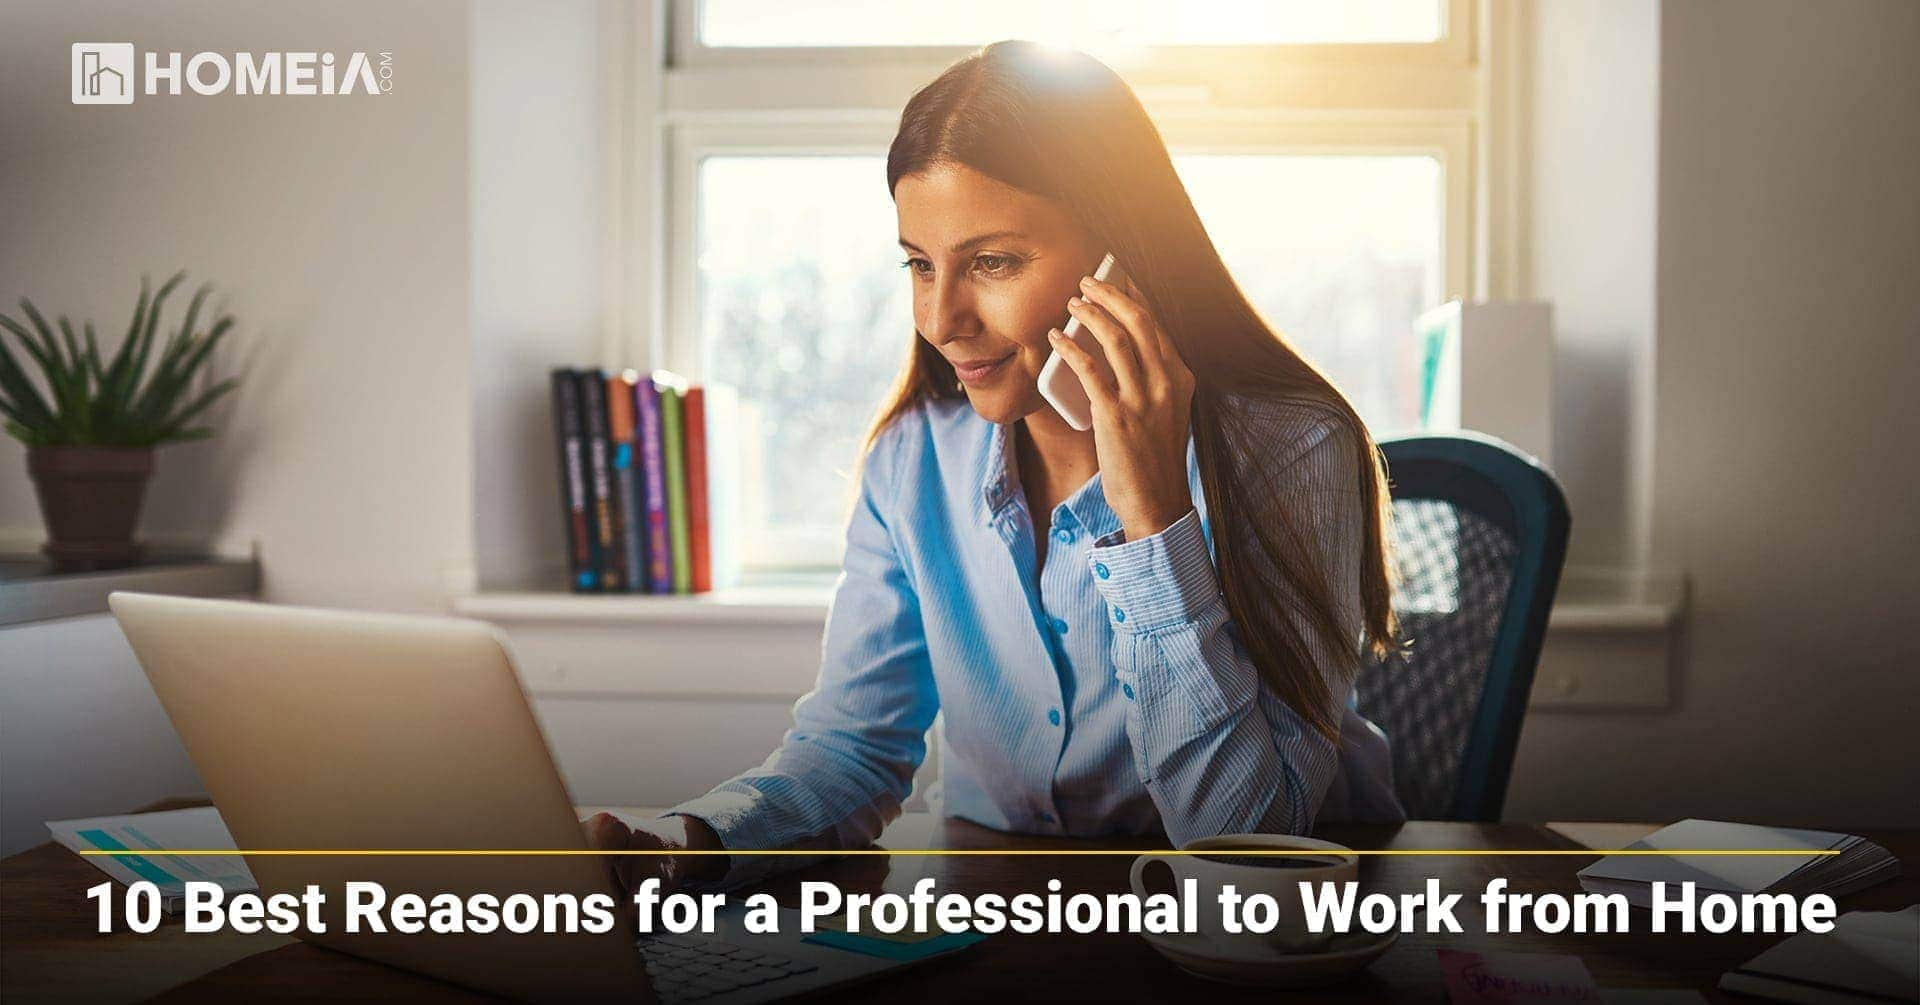 10 Best Reasons for a Professional to Work from Home